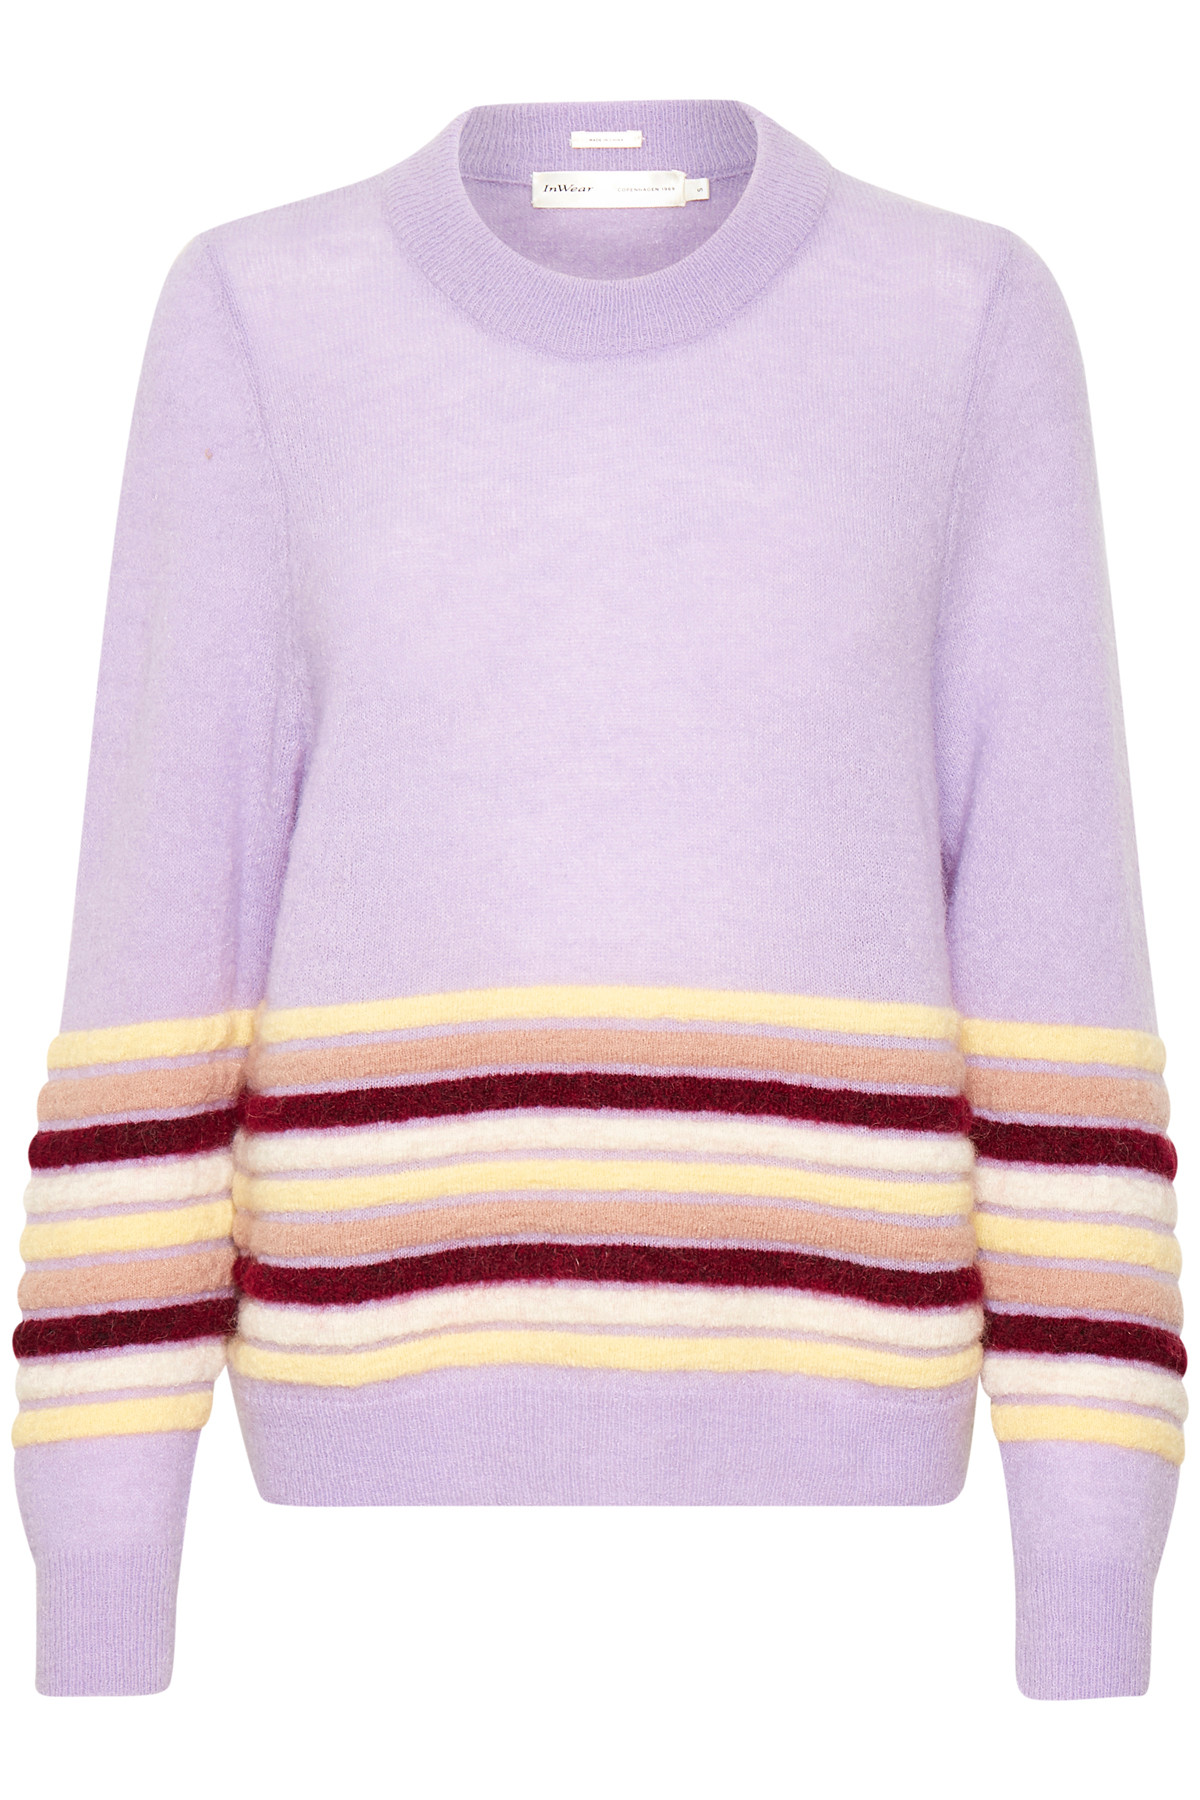 Image of   InWear NOREEN PULLOVER 30103990 (Purple Rose 10390, XL)